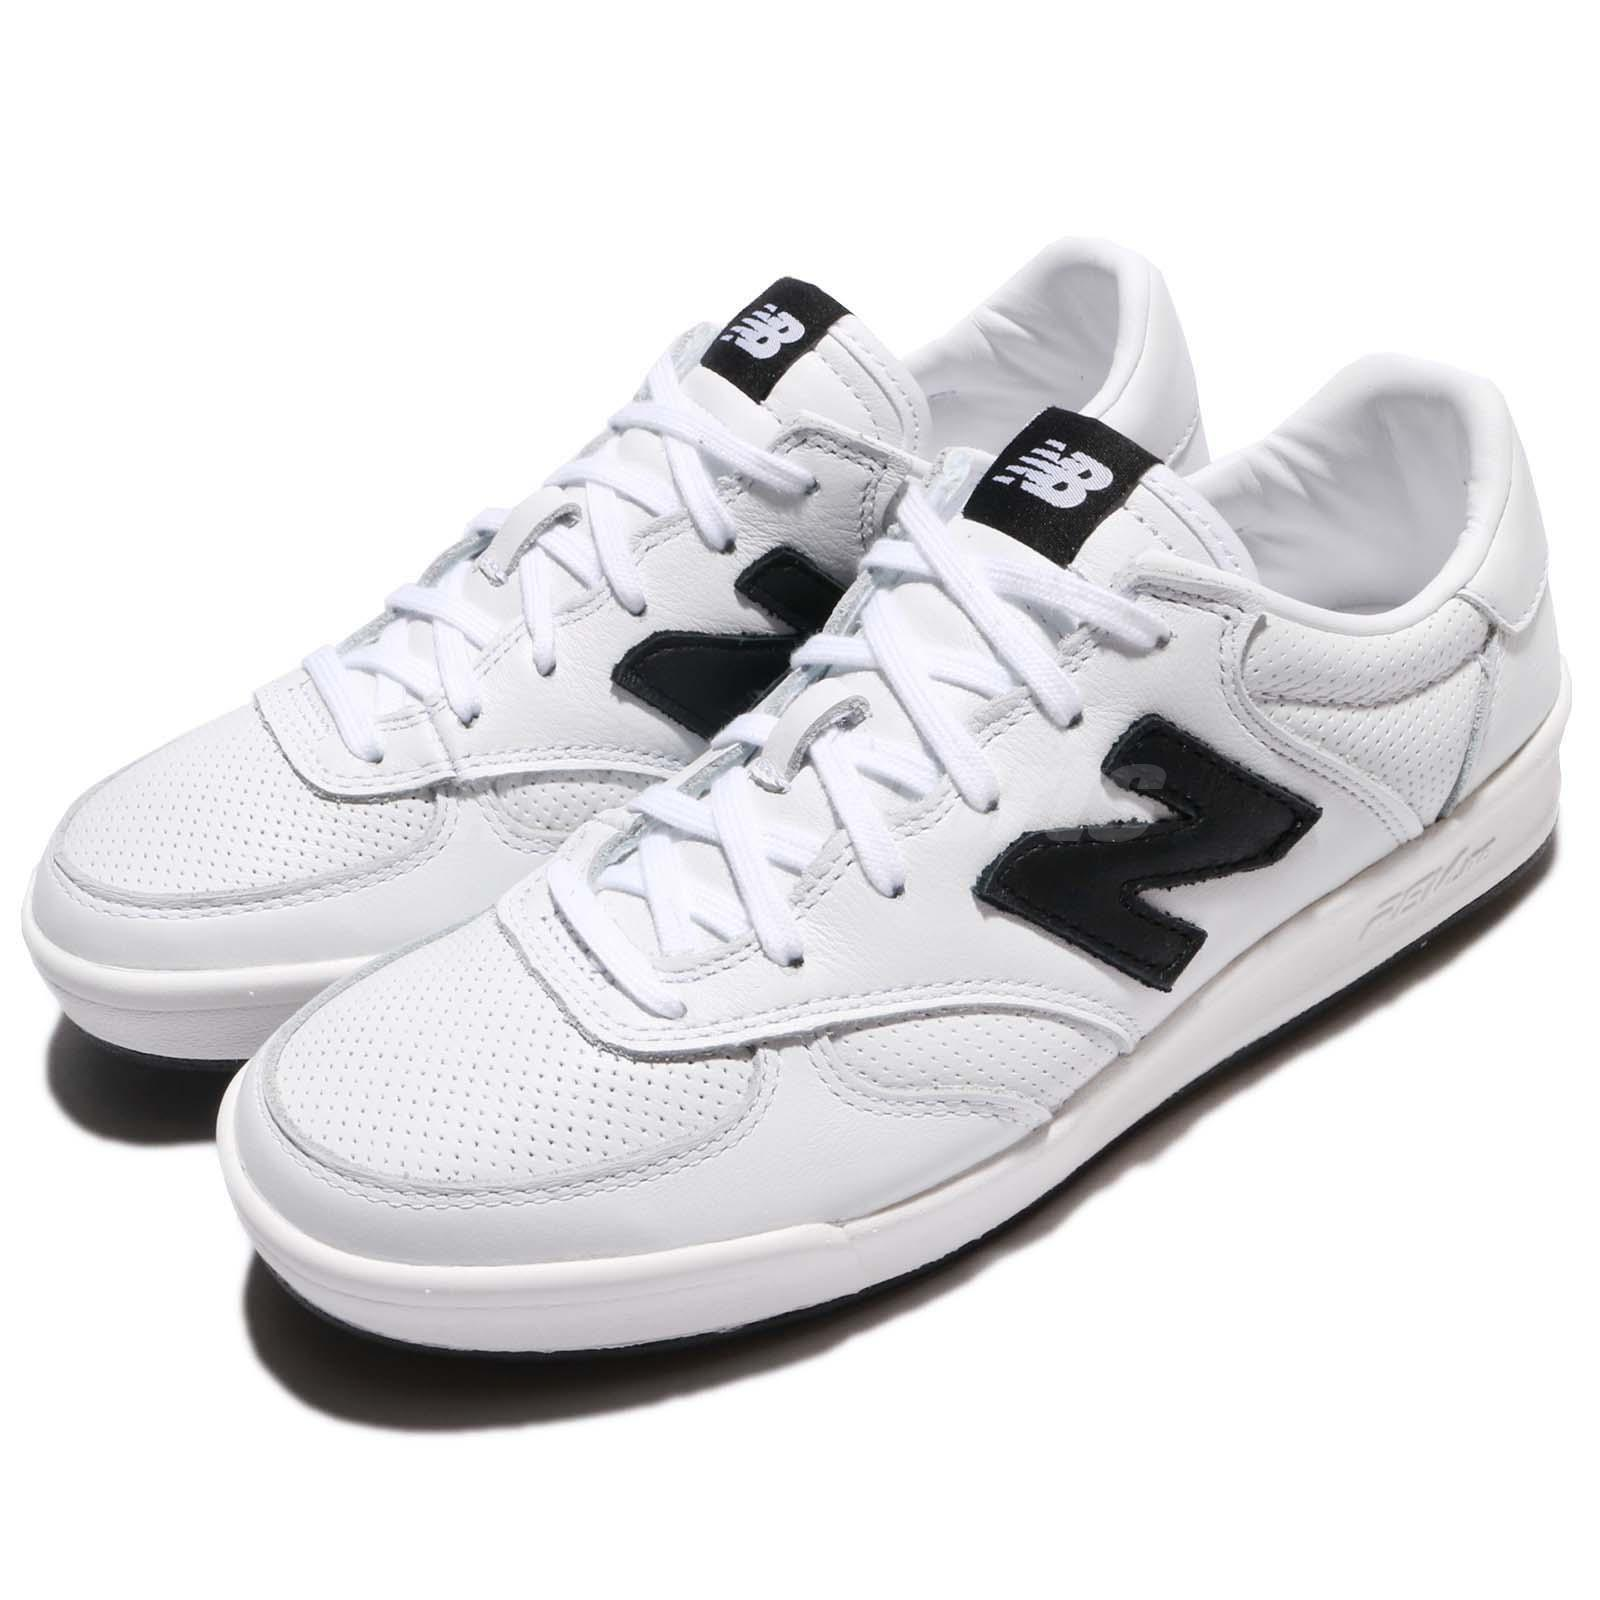 New Balance CRT300LC D Leather blanc noir homme Court chaussures Sneakers CRT300LCD